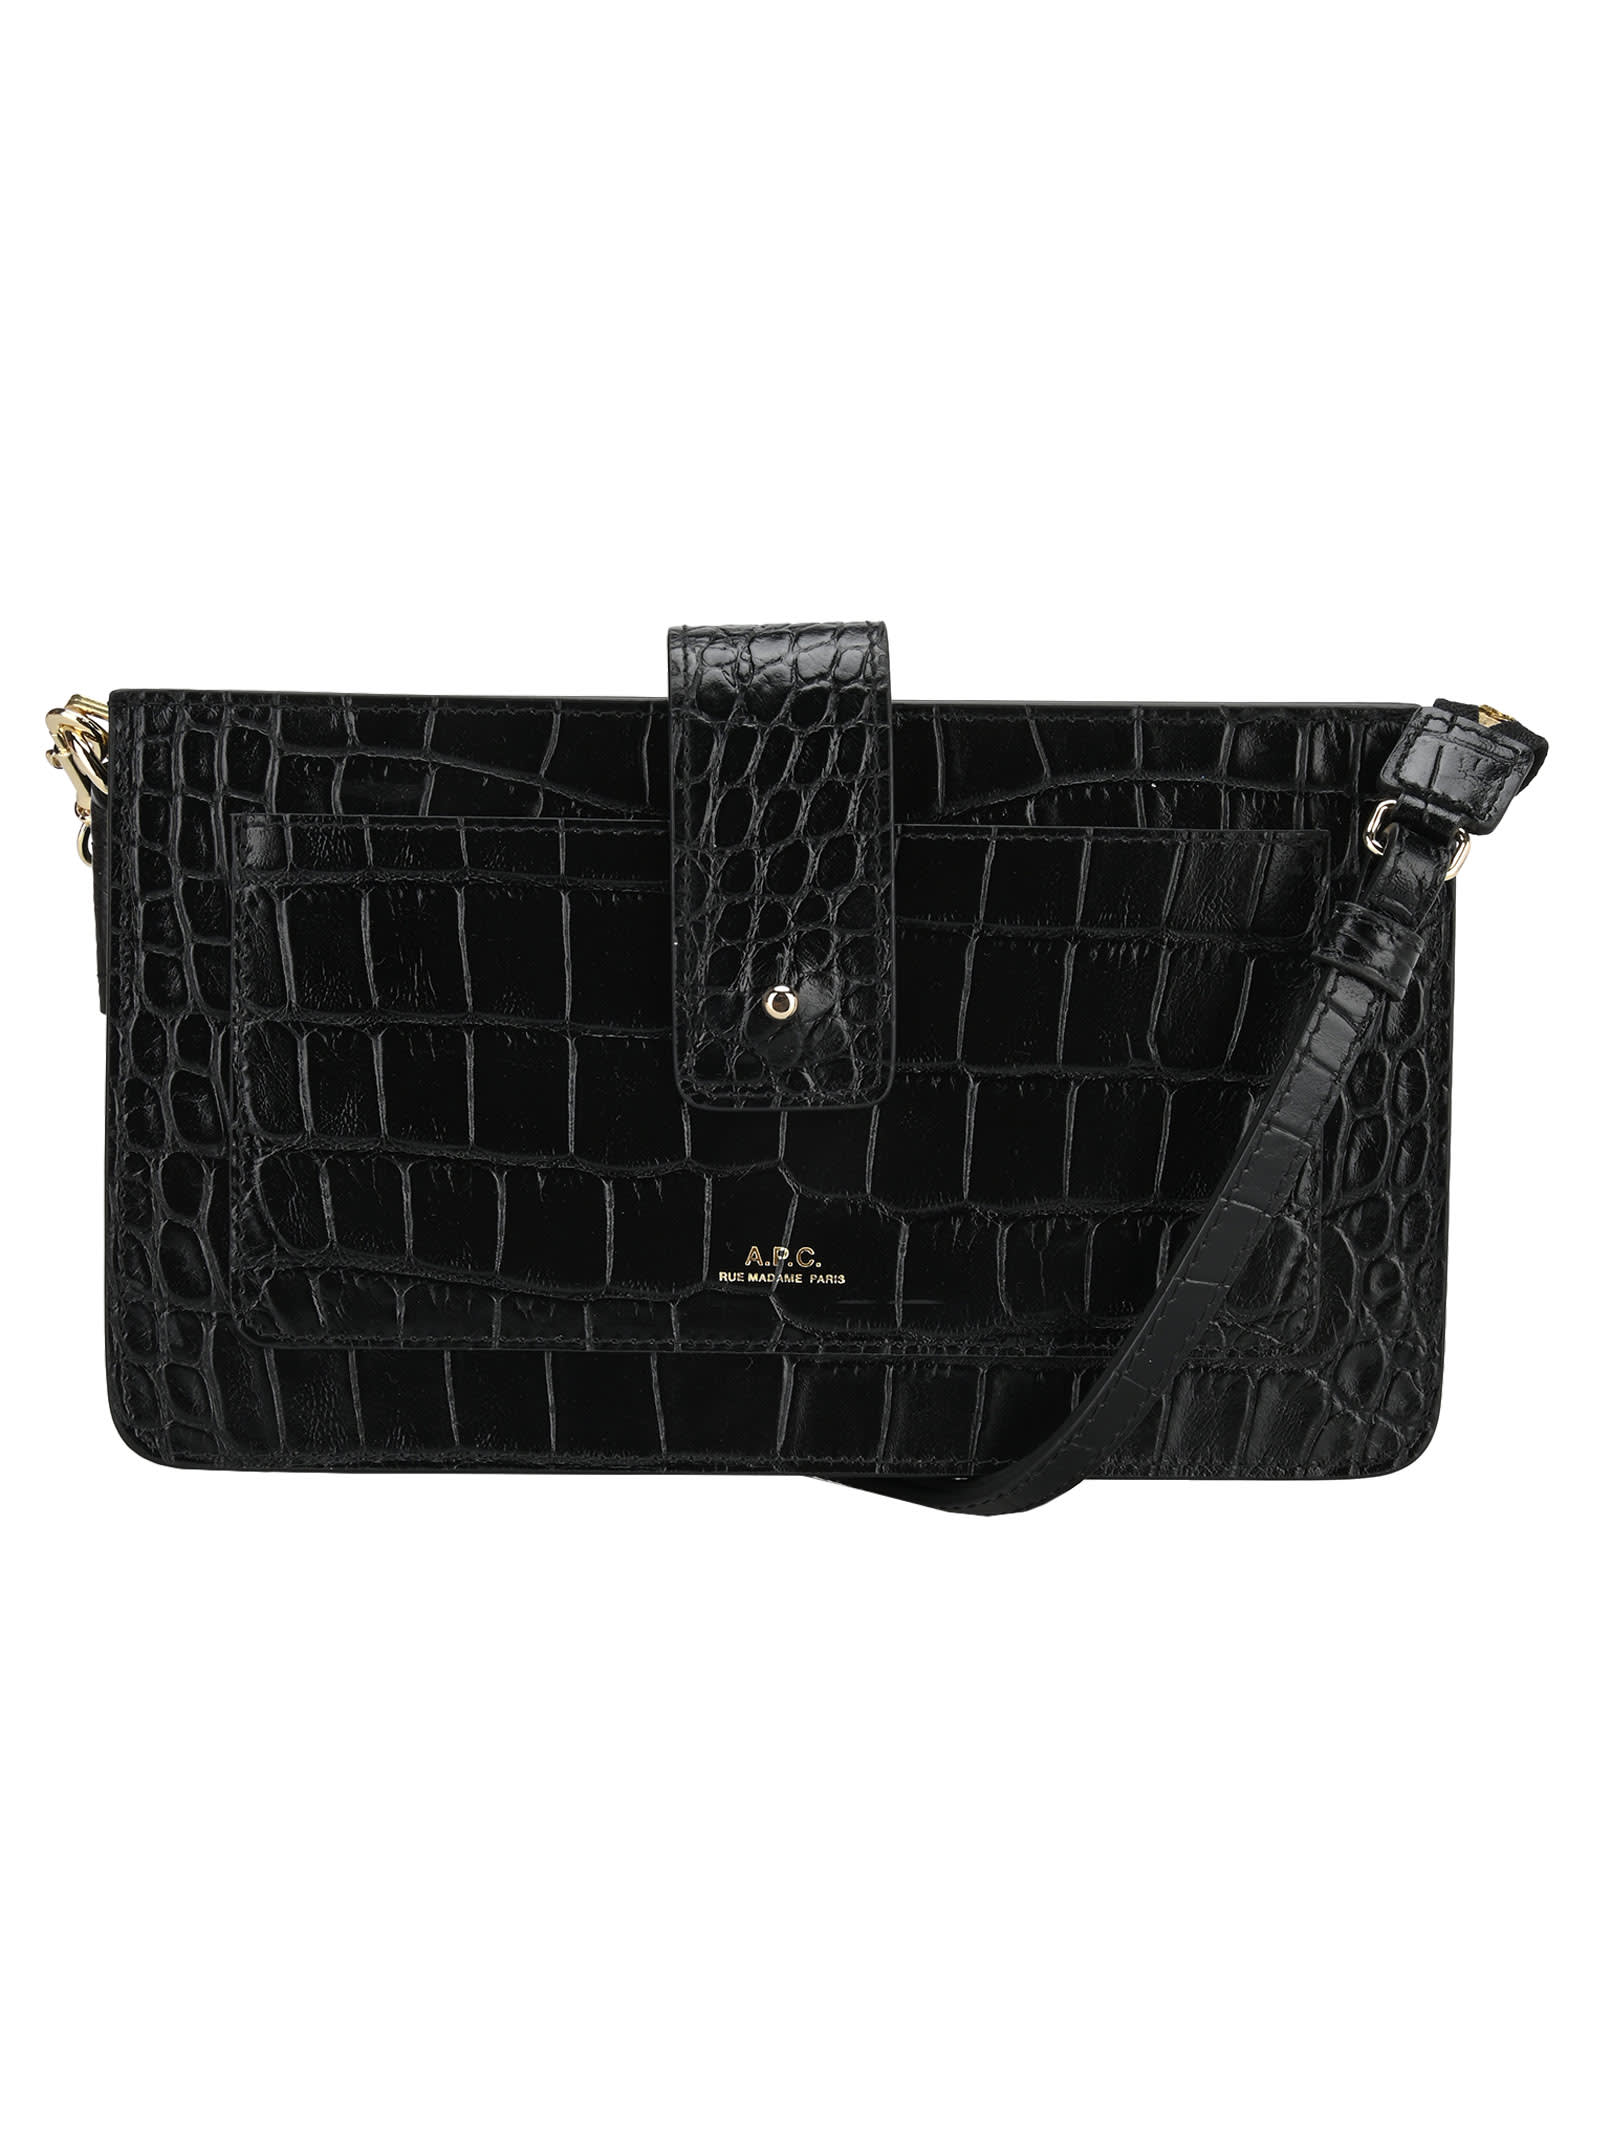 A.p.c. A.P.C. ALBANE CLUTCH EMBOSSED IN CROCO MOTIF